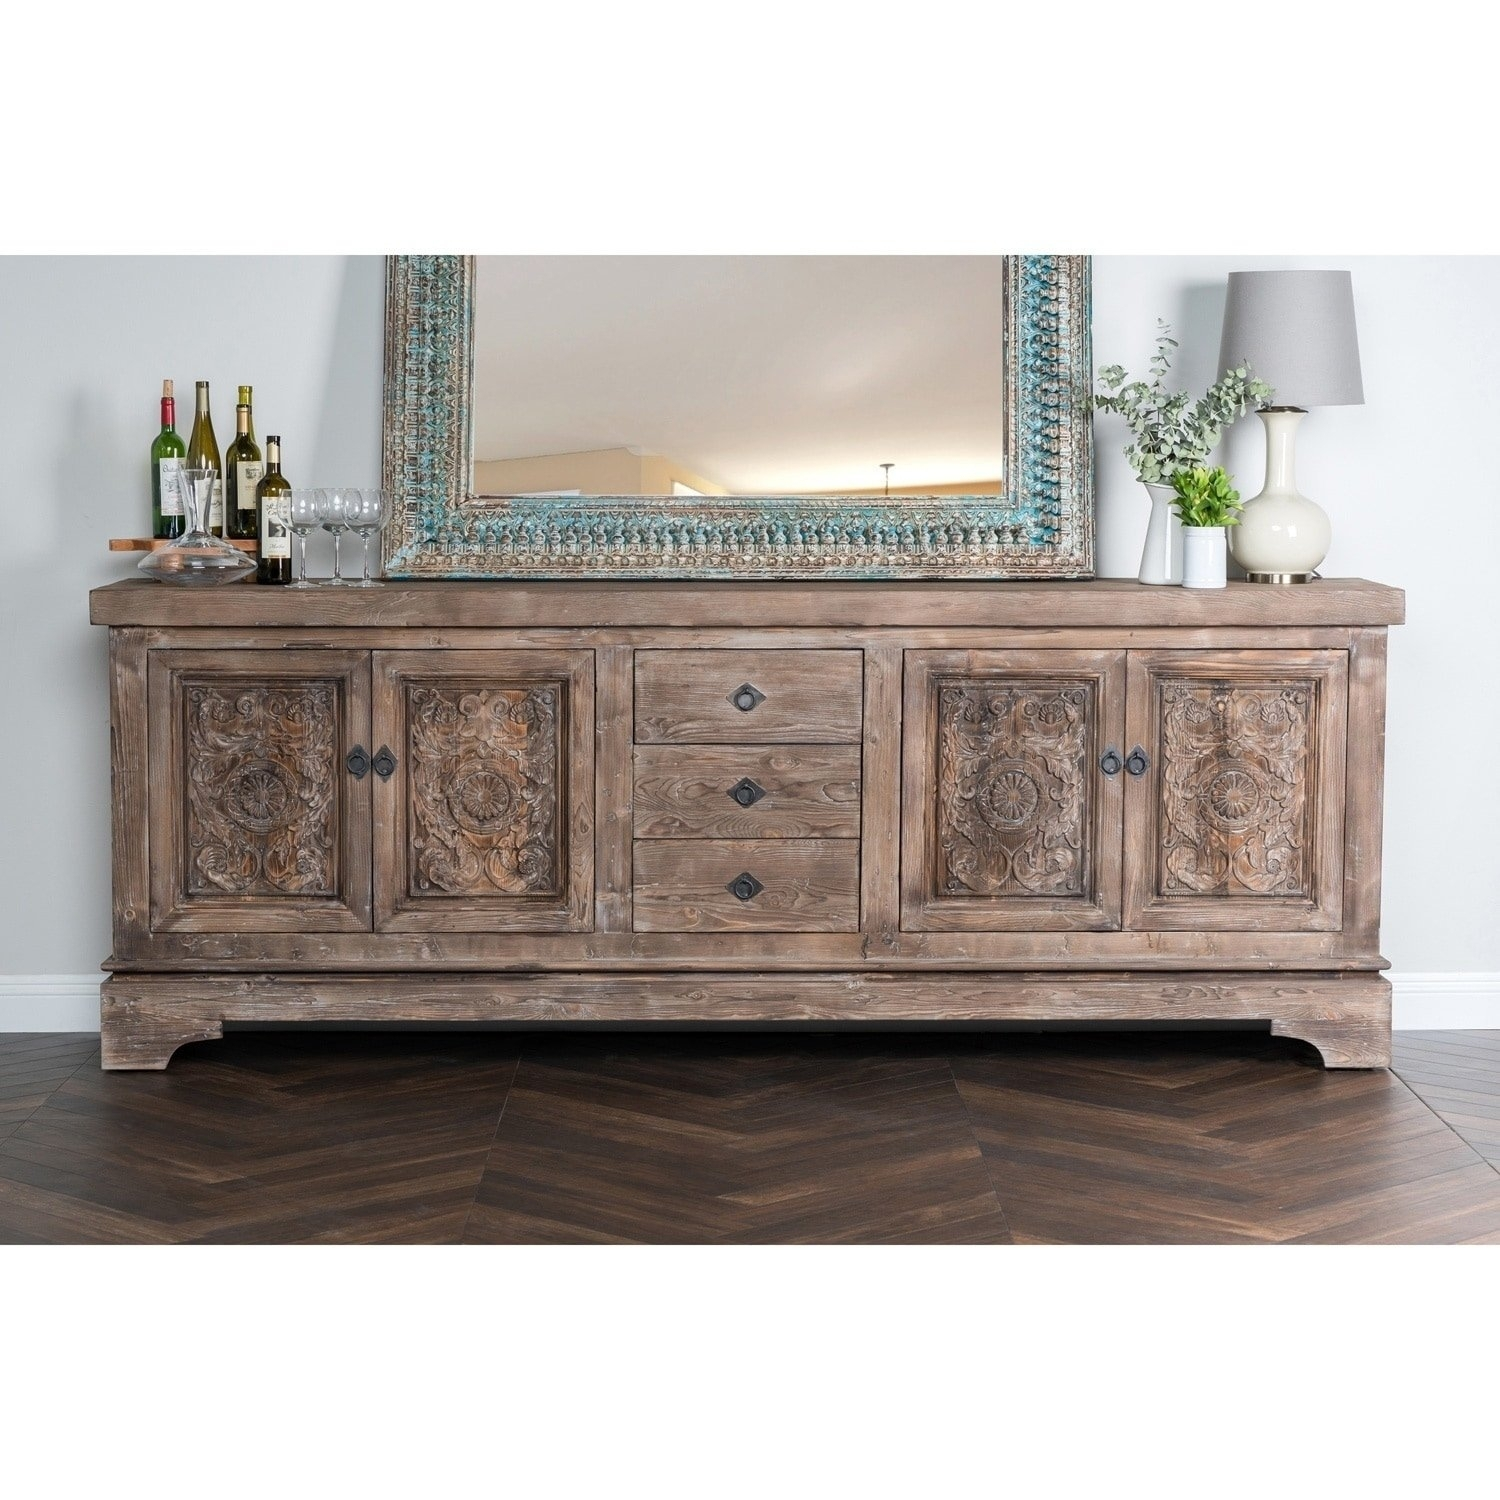 Shop Allen Rustic Taupe Reclaimed Pine 106 Inch Sideboardkosas Within Most Current Iron Pine Sideboards (#12 of 20)